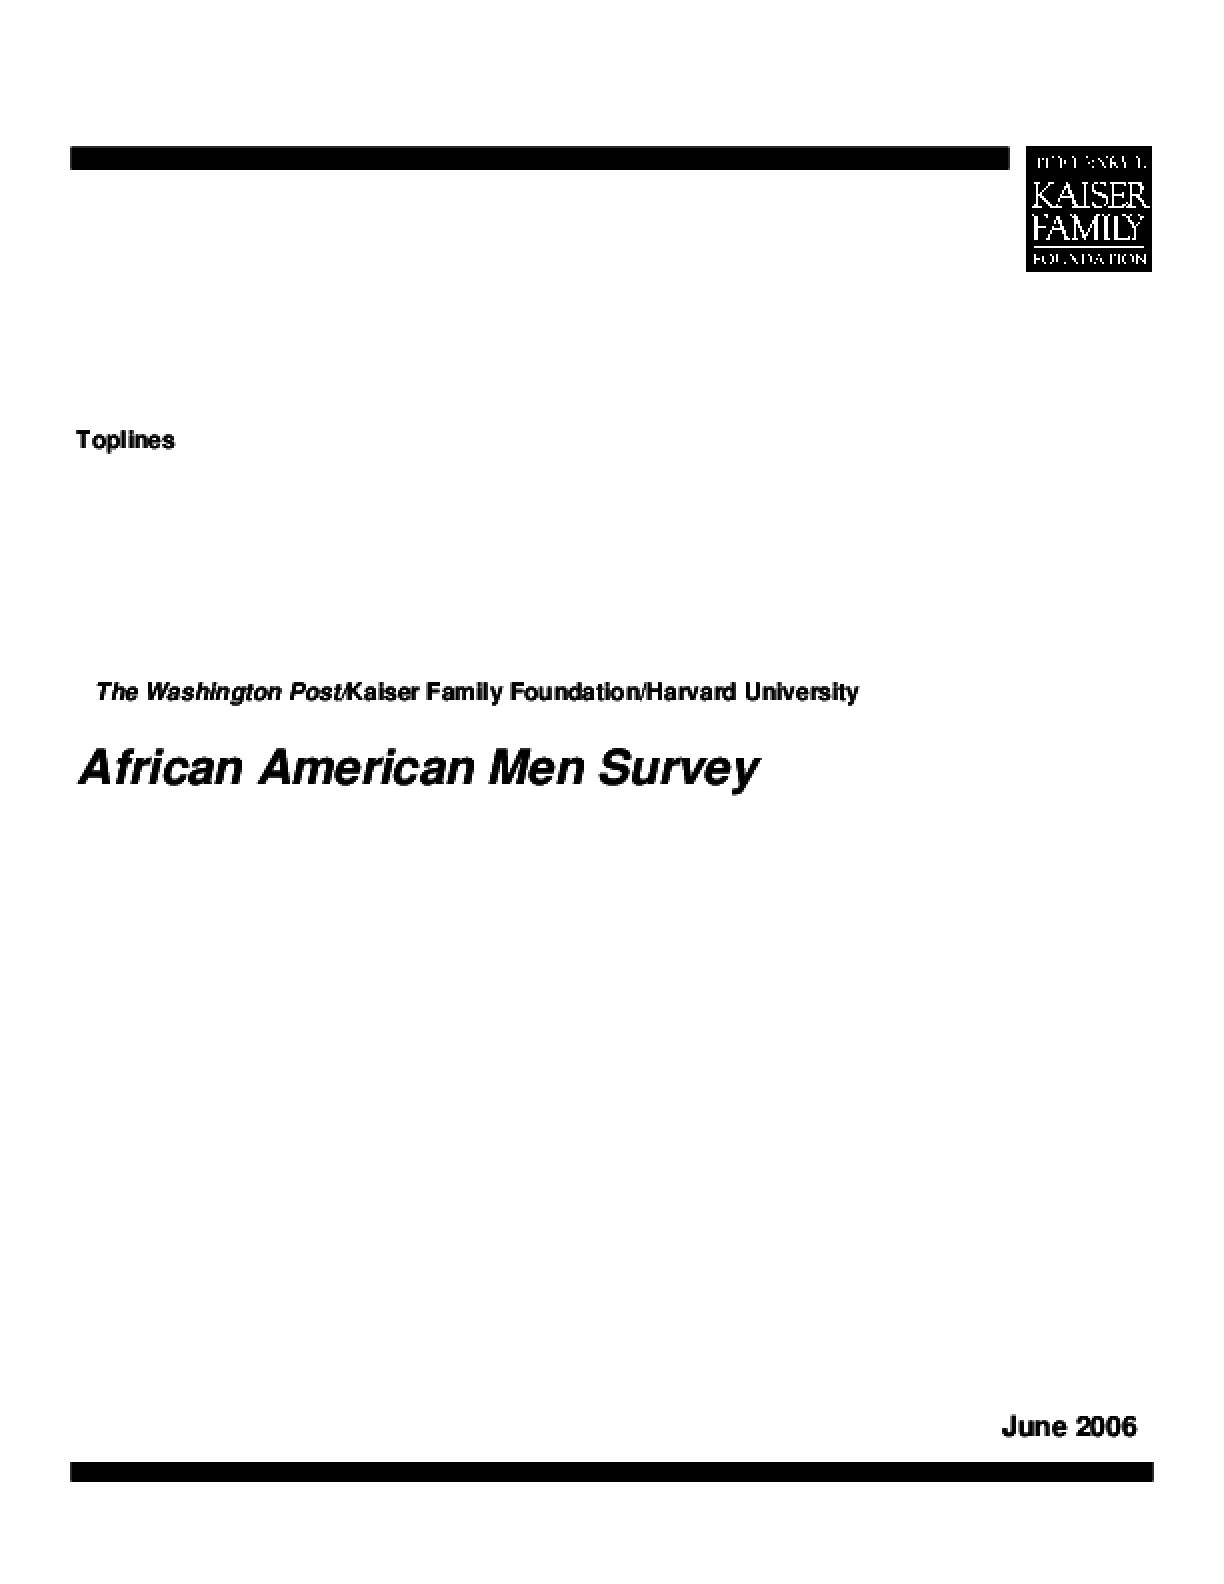 African American Men Survey